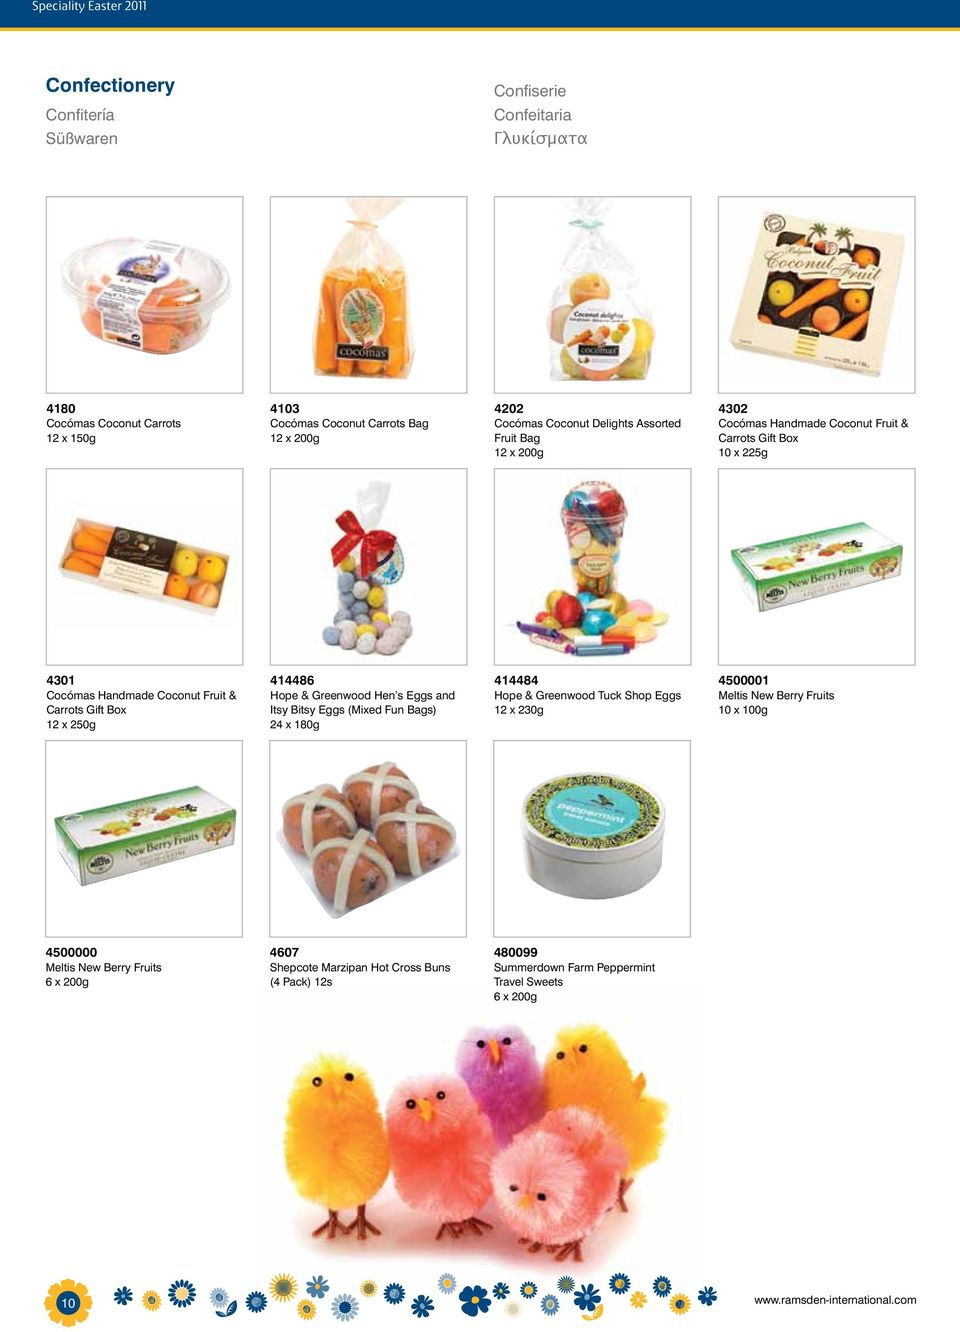 250g 414486 Hope & Greenwood Hen s Eggs and Itsy Bitsy Eggs (Mixed Fun Bags) 24 x 180g 414484 Hope & Greenwood Tuck Shop Eggs 12 x 230g 4500001 Meltis New Berry Fruits 10 x 100g